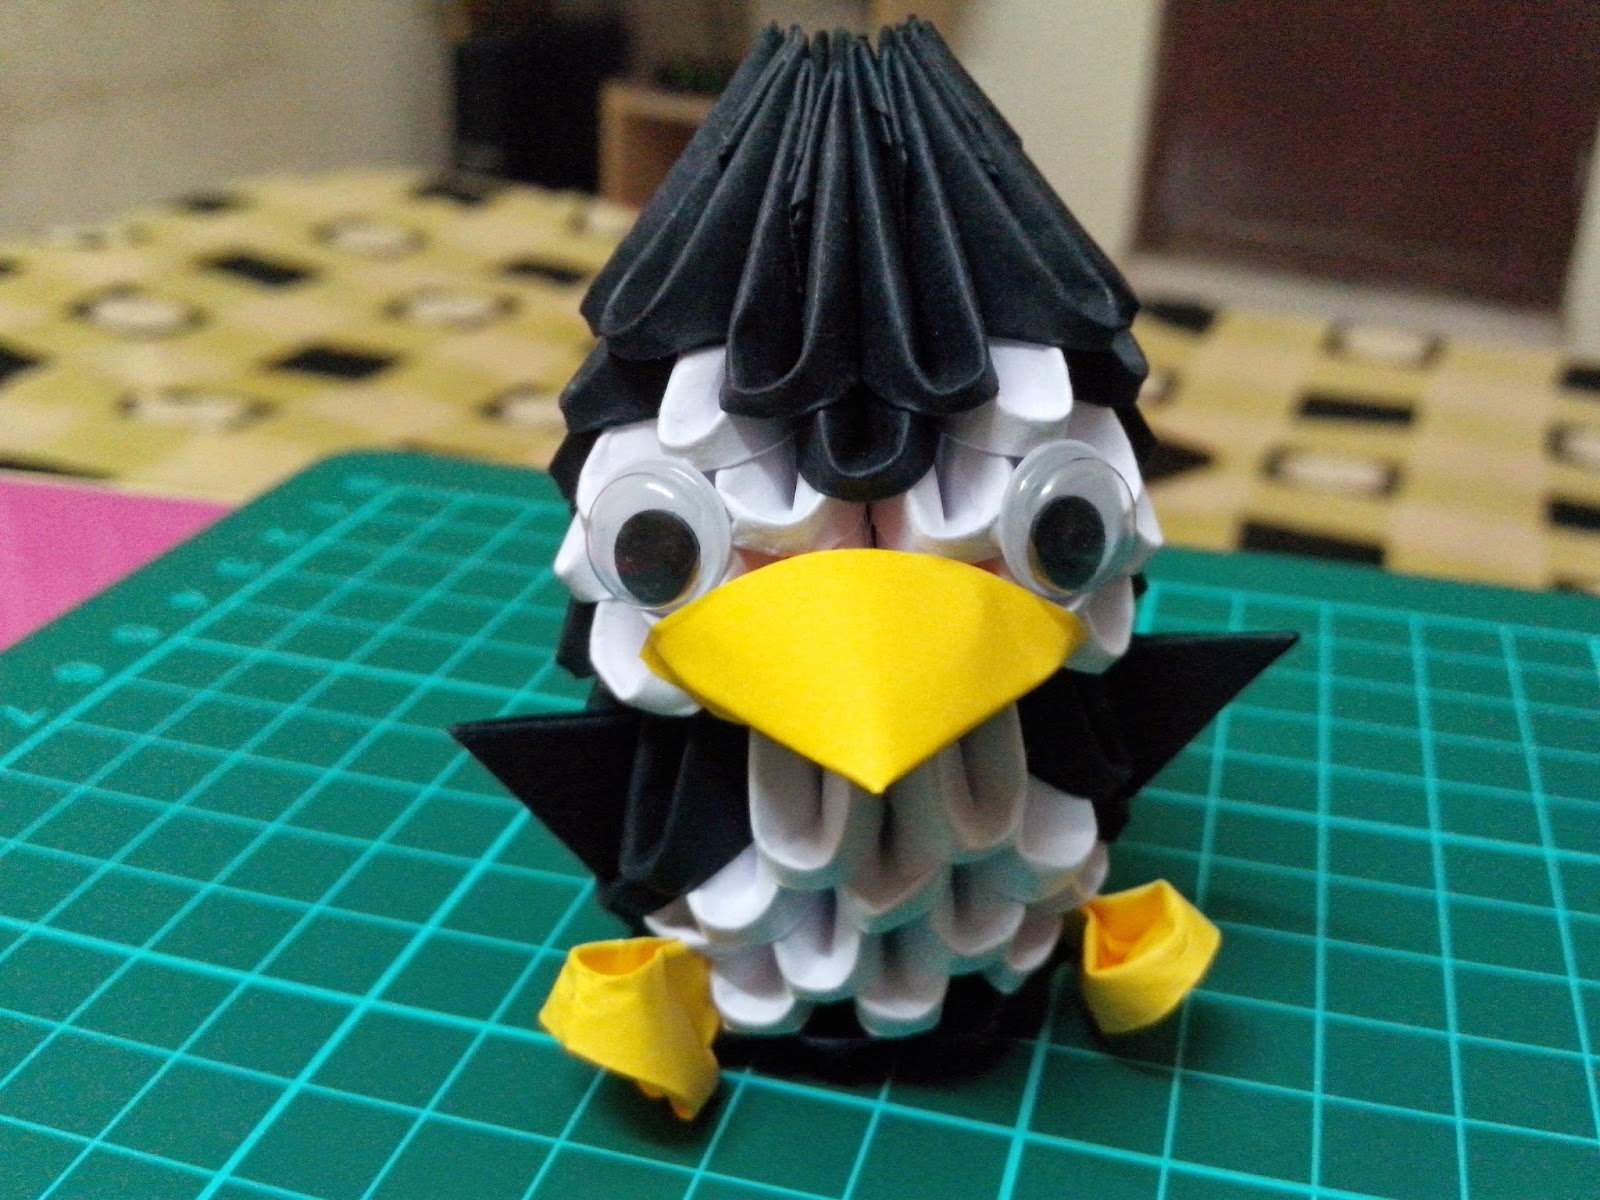 Kaurscrafts: 3d Origami penguin, chicken and dragon boat - photo#42